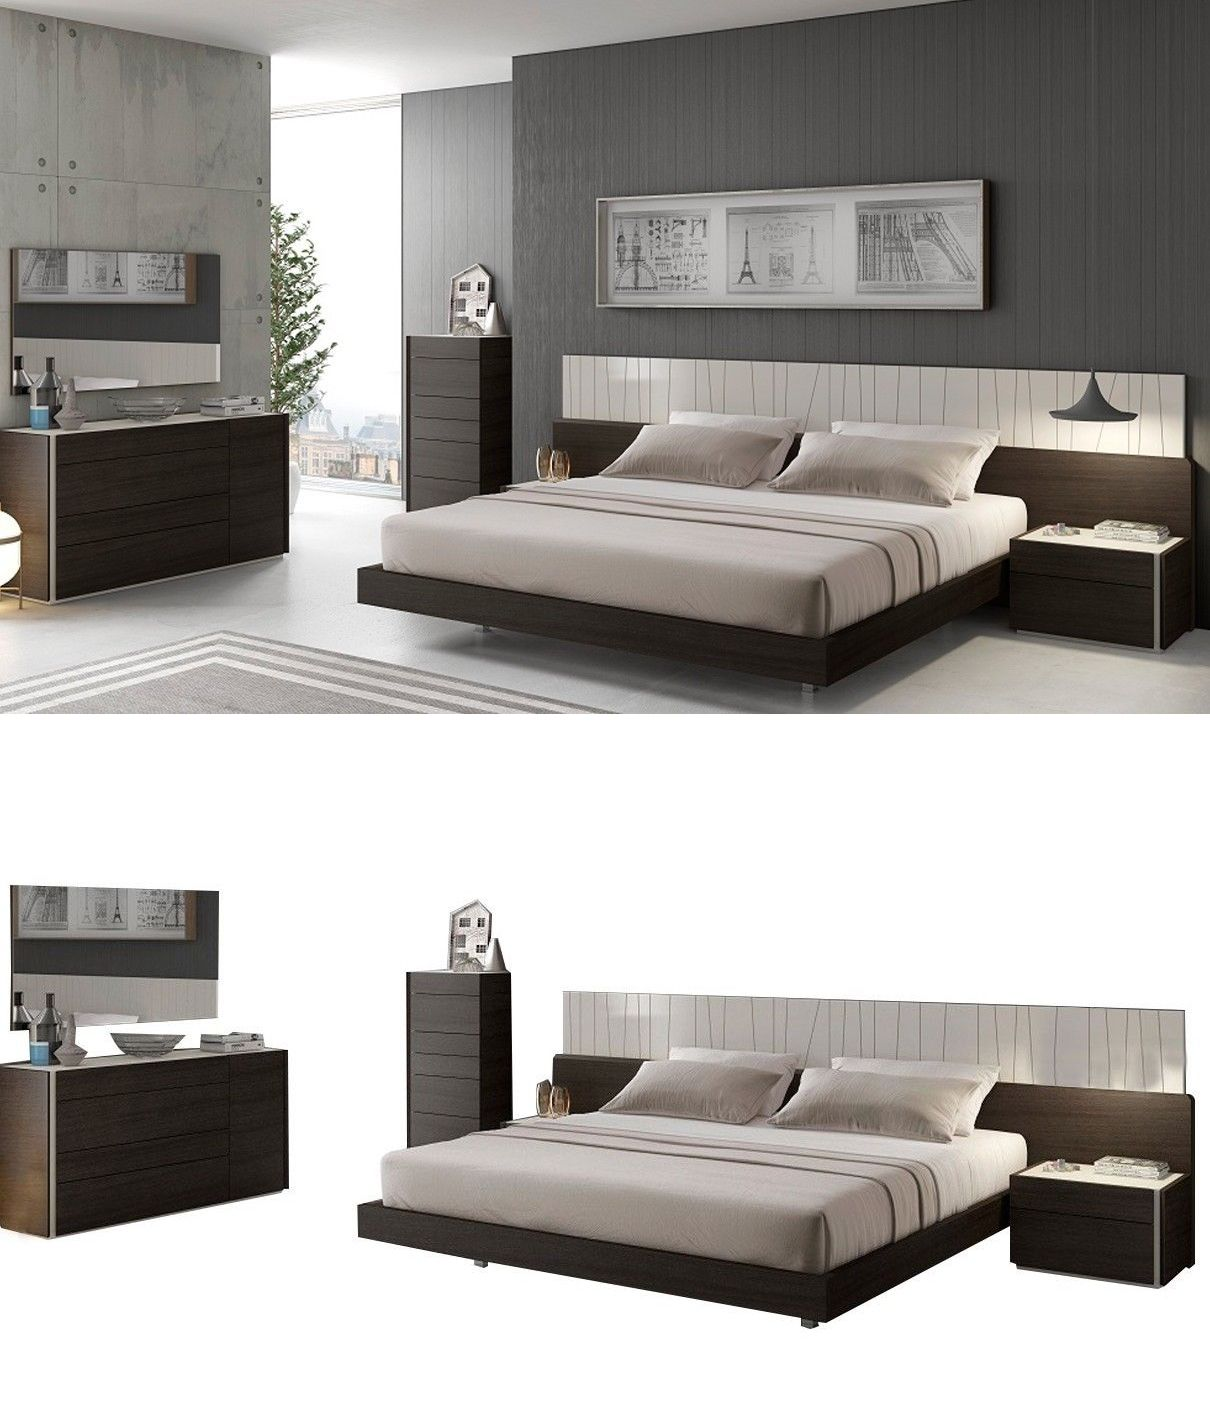 Bedroom Sets 20480 Jandm Porto Contemporary King Bedroom Set In